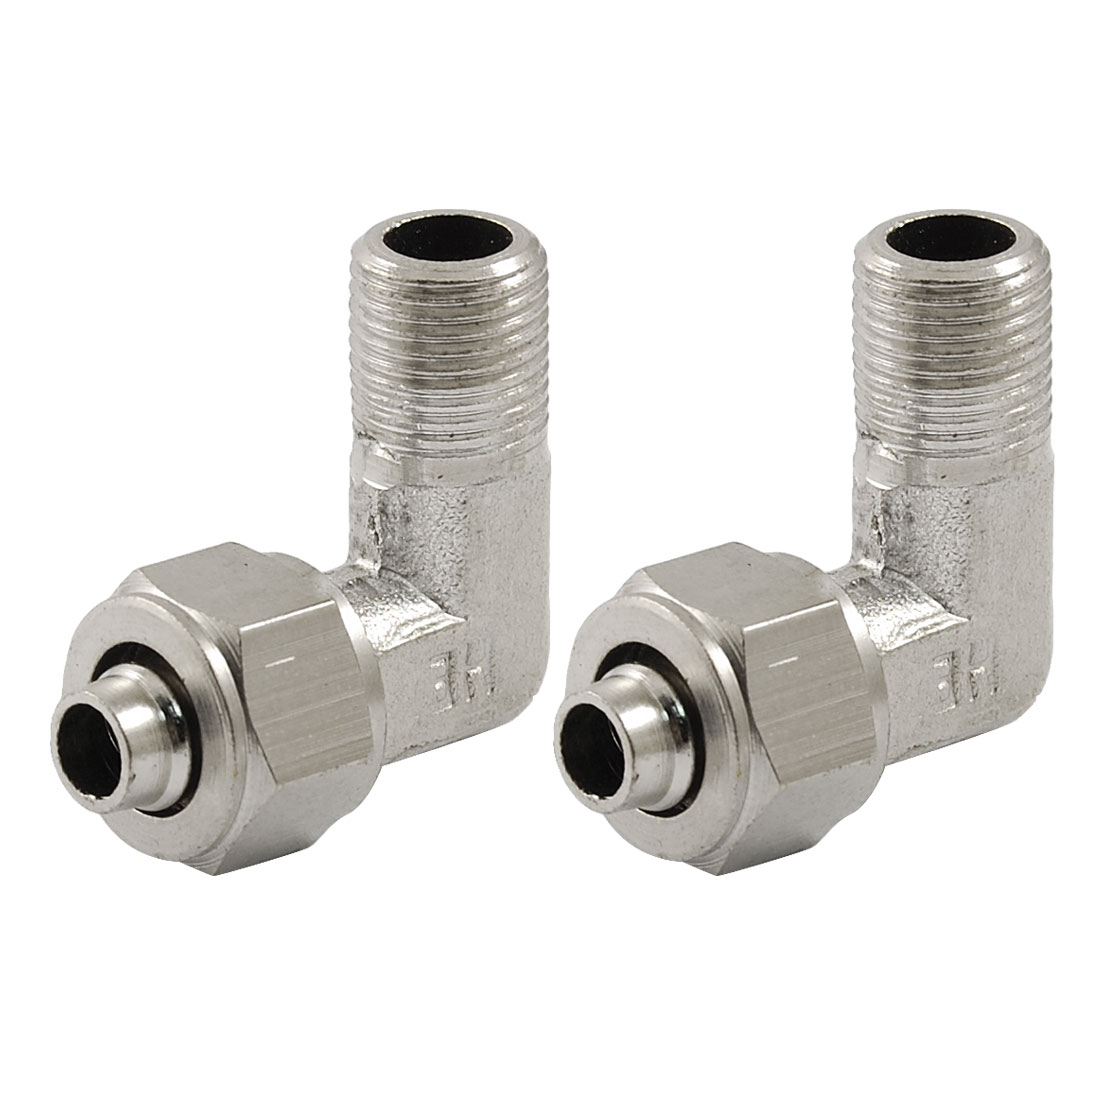 "2 x 1/8"" Male Thread 8mm Pipe Air Pneumatic L Shaped Quick Couplers"